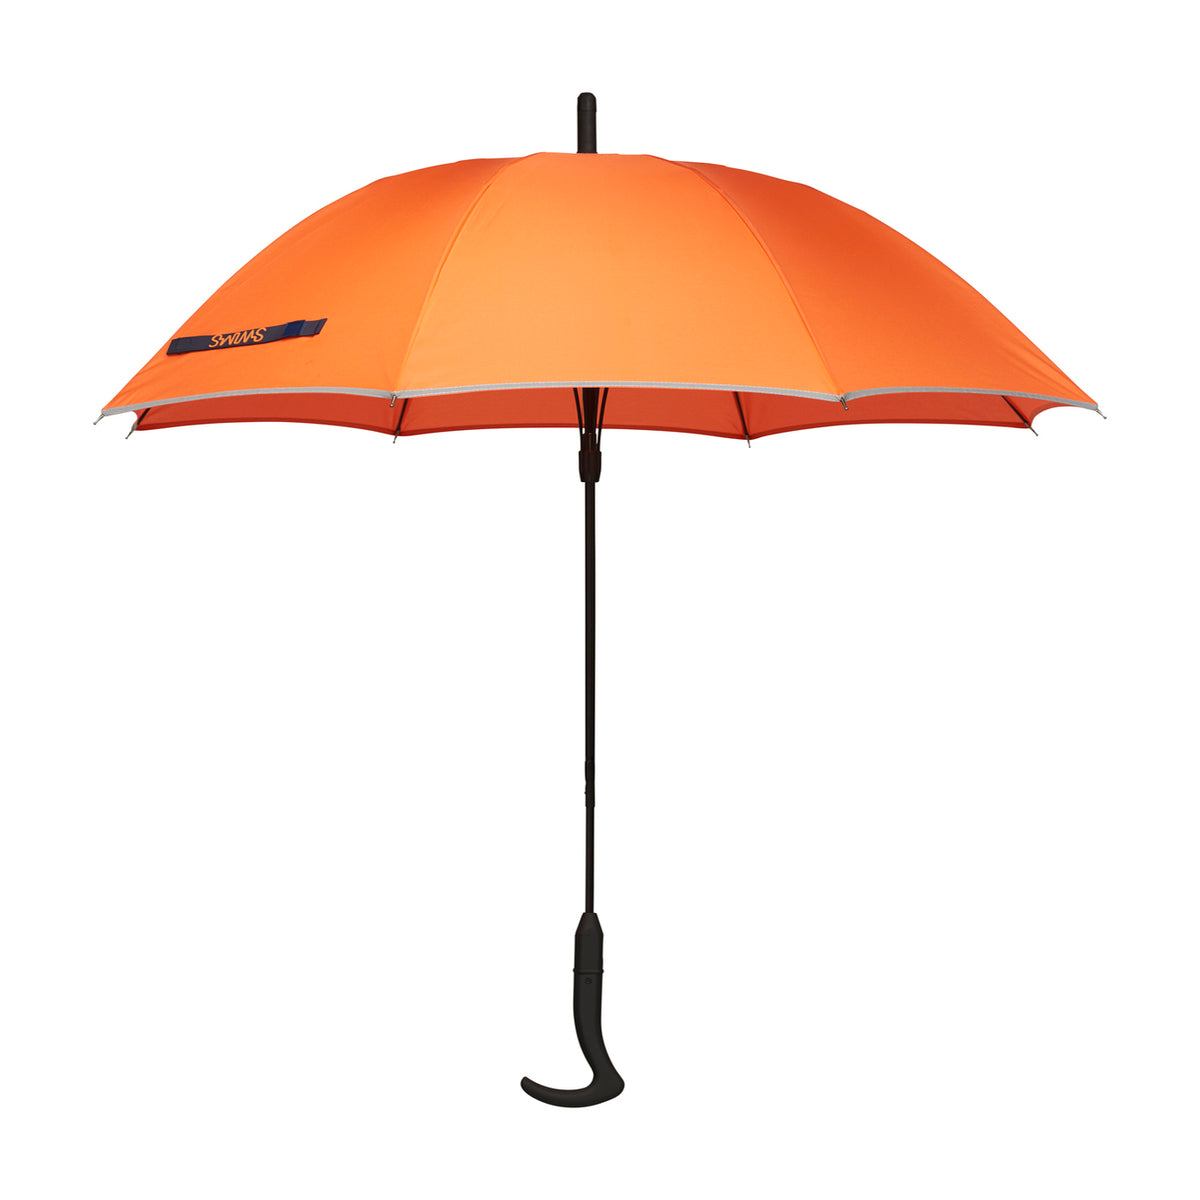 Umbrella Long - background::white,variant::Orange/Black